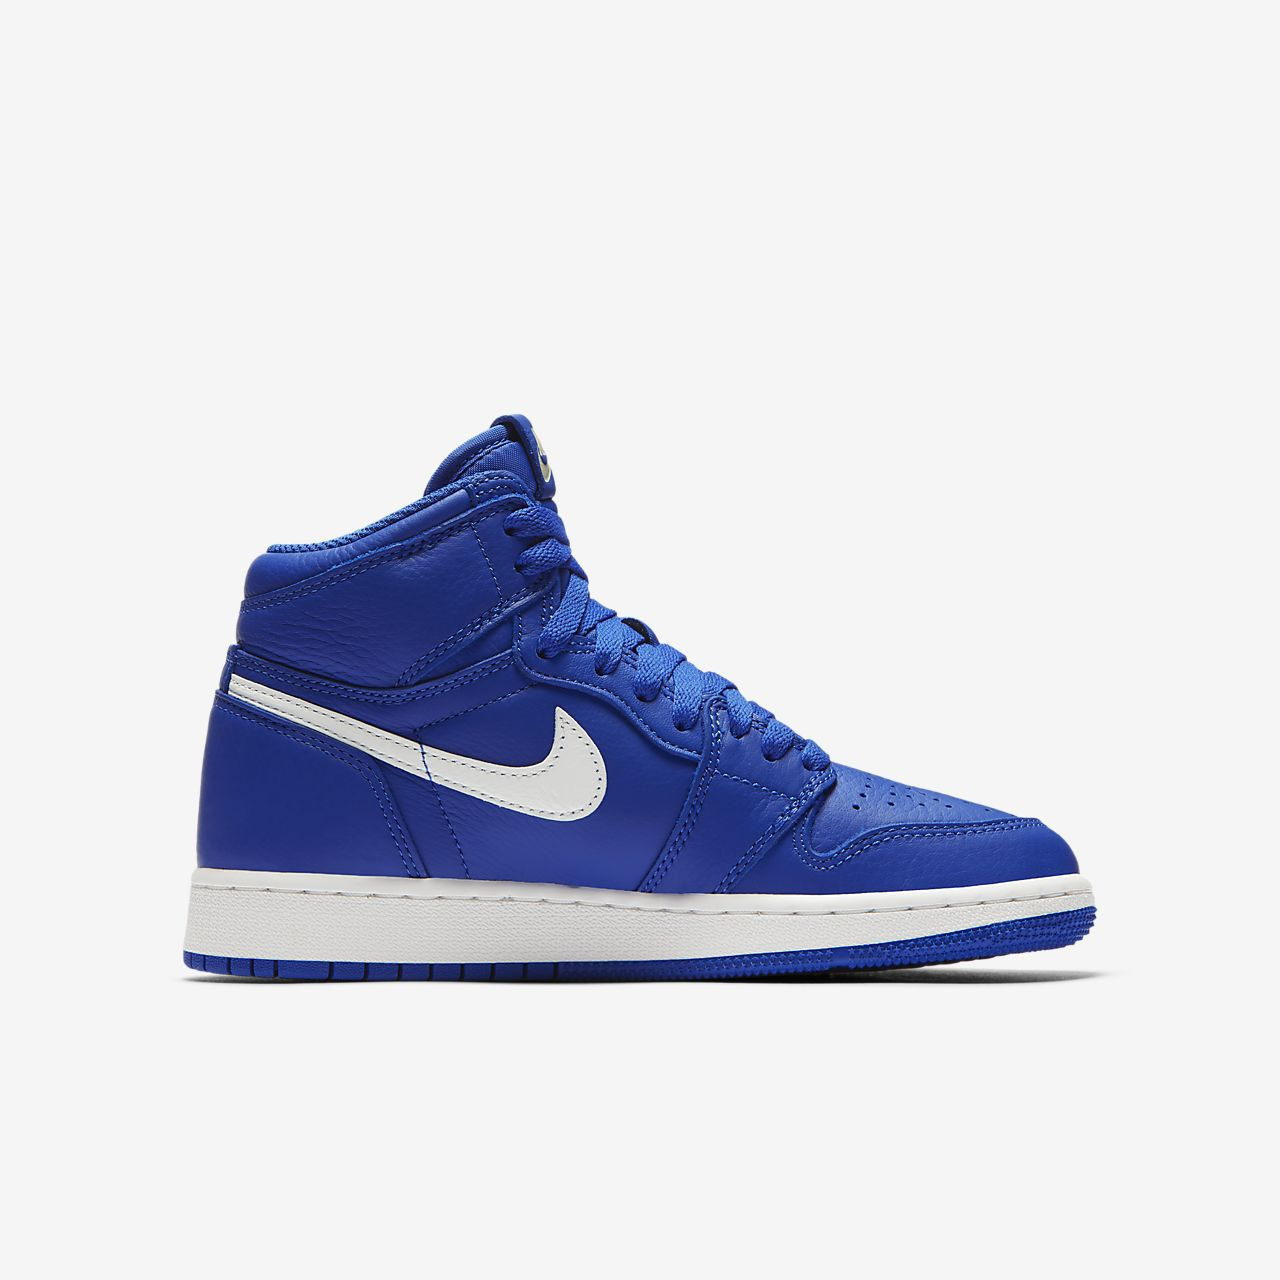 feb22666b47 Air Jordan 1 Retro High OG Boys' Shoe. Nike.com ZA